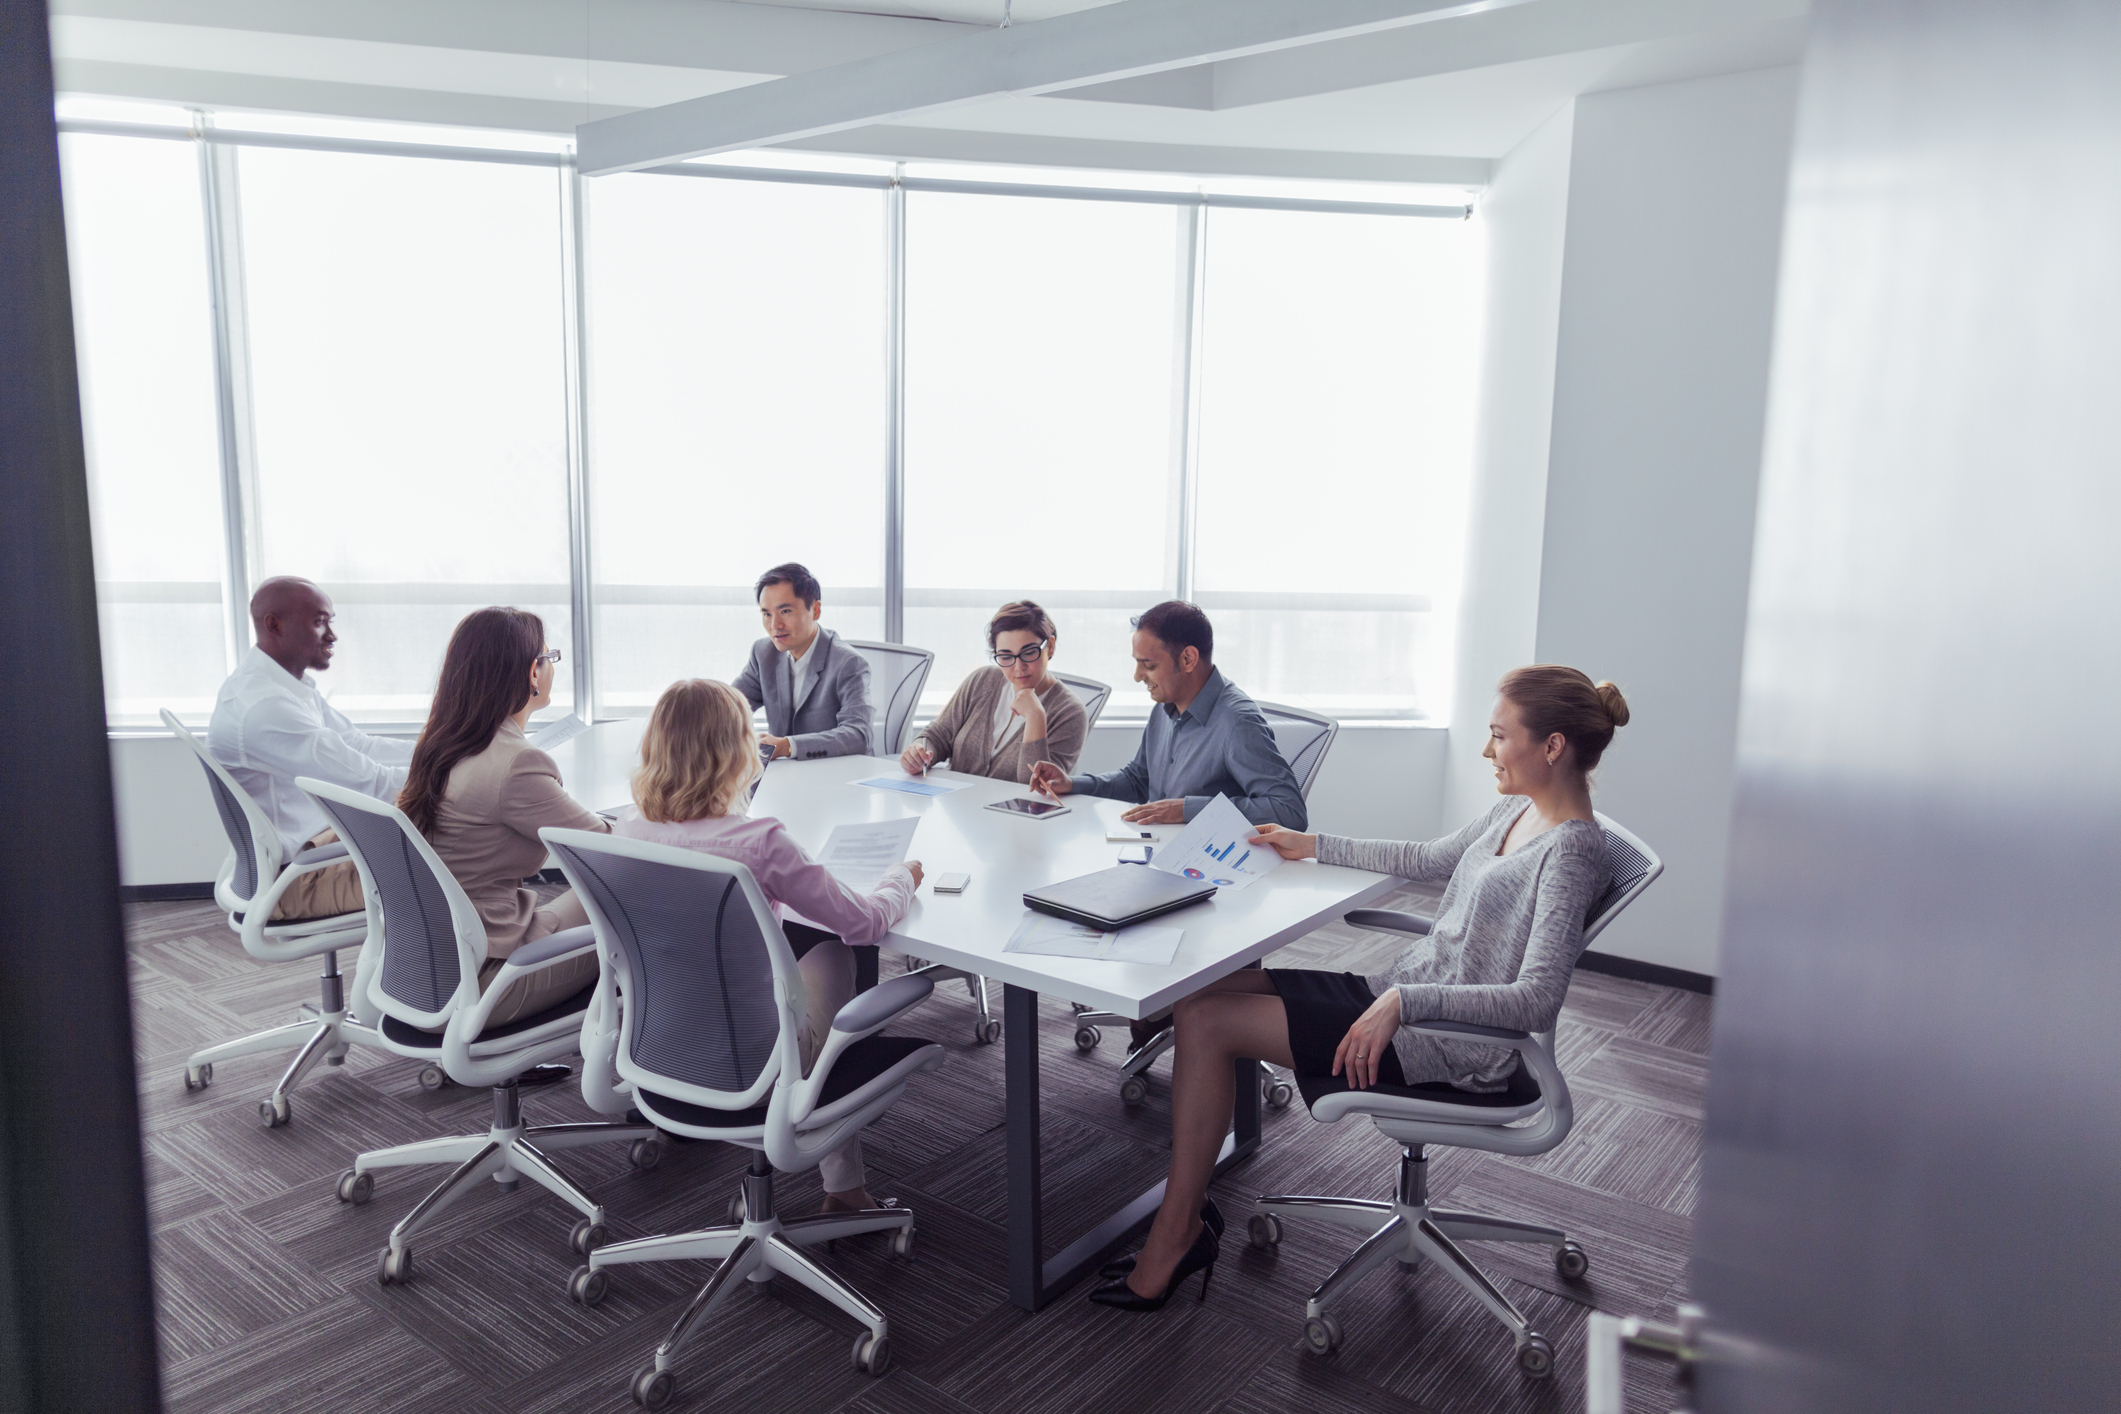 Recent Studies Show The Benefits Of More Women And Diversity In The Boardroom